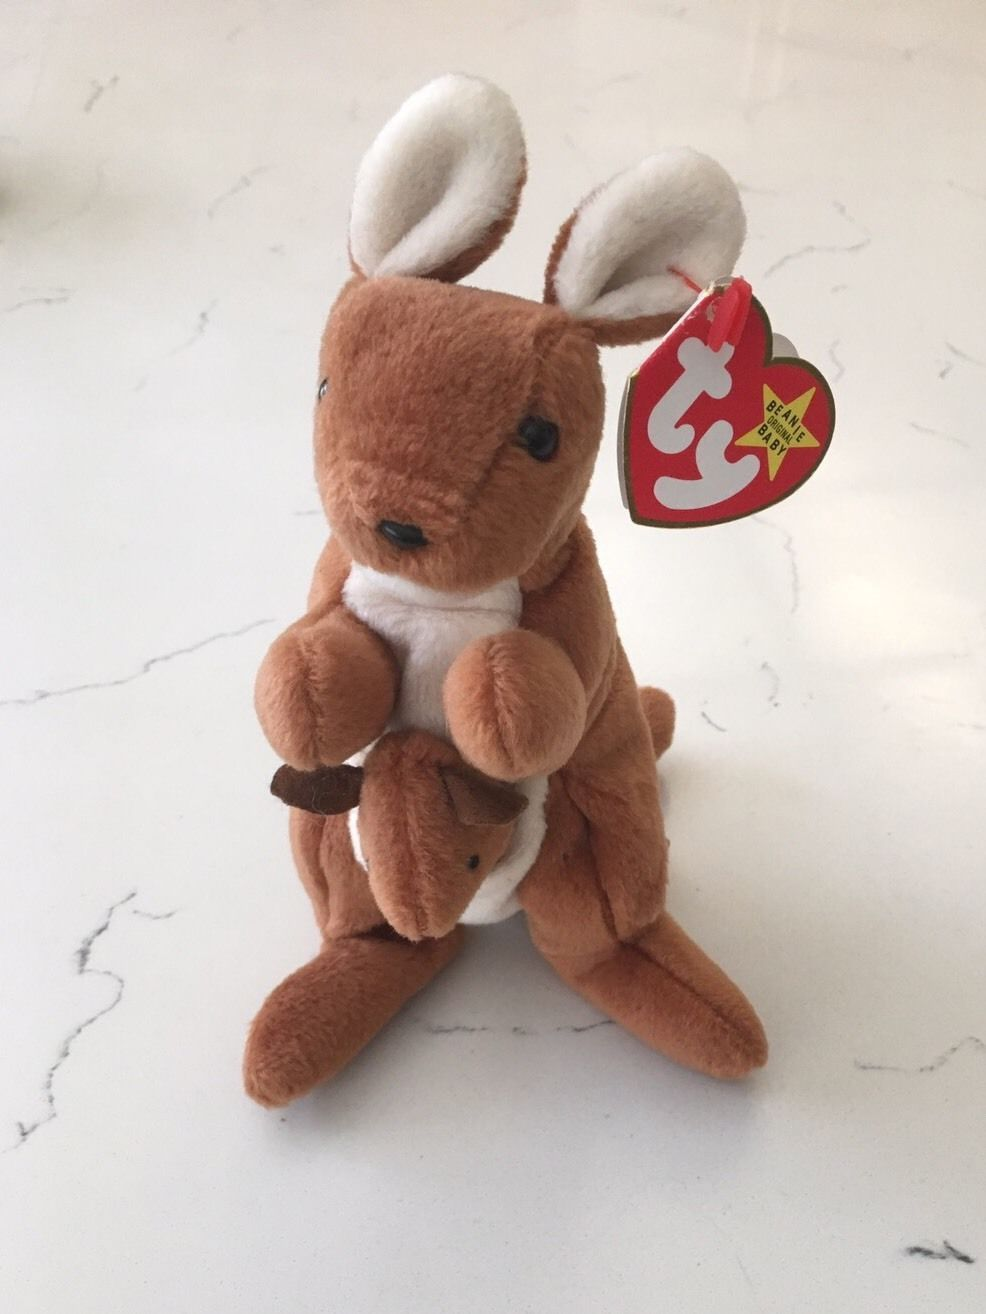 fb0615357ca RARE Ty Beanie Baby Pouch the Kangaroo With Errors PVC Pellets ...